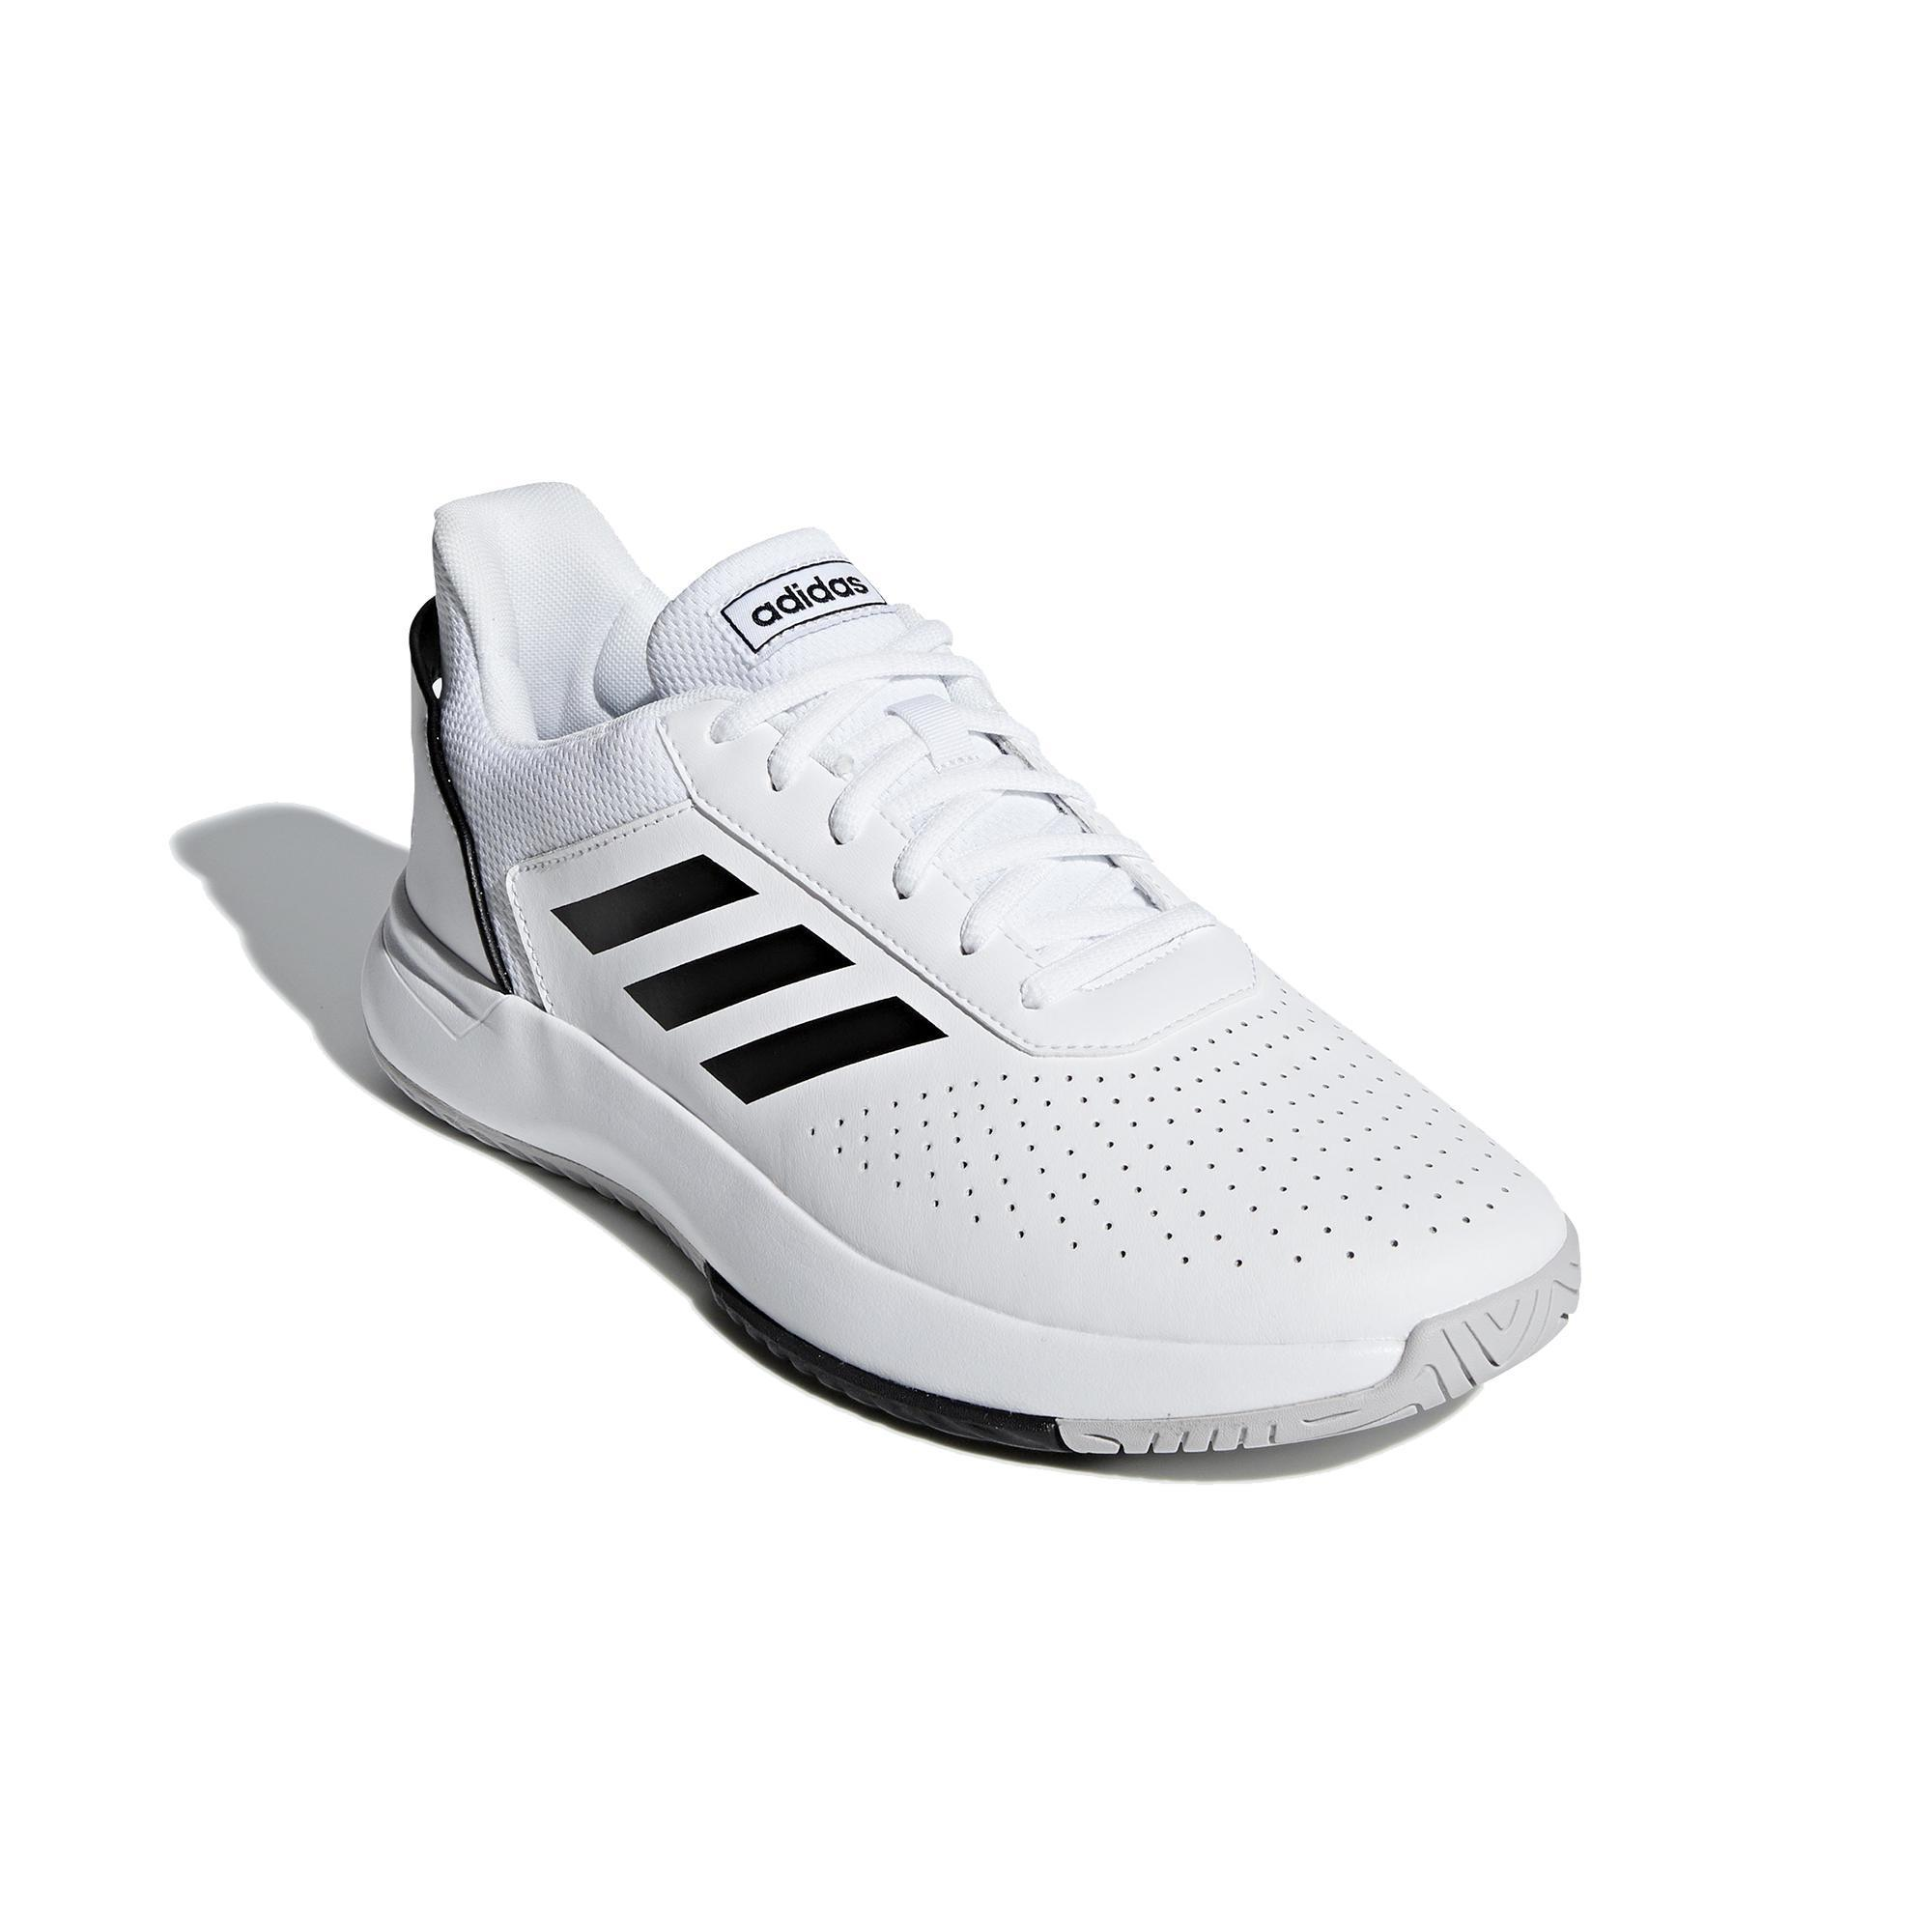 adidas court chaussure homme